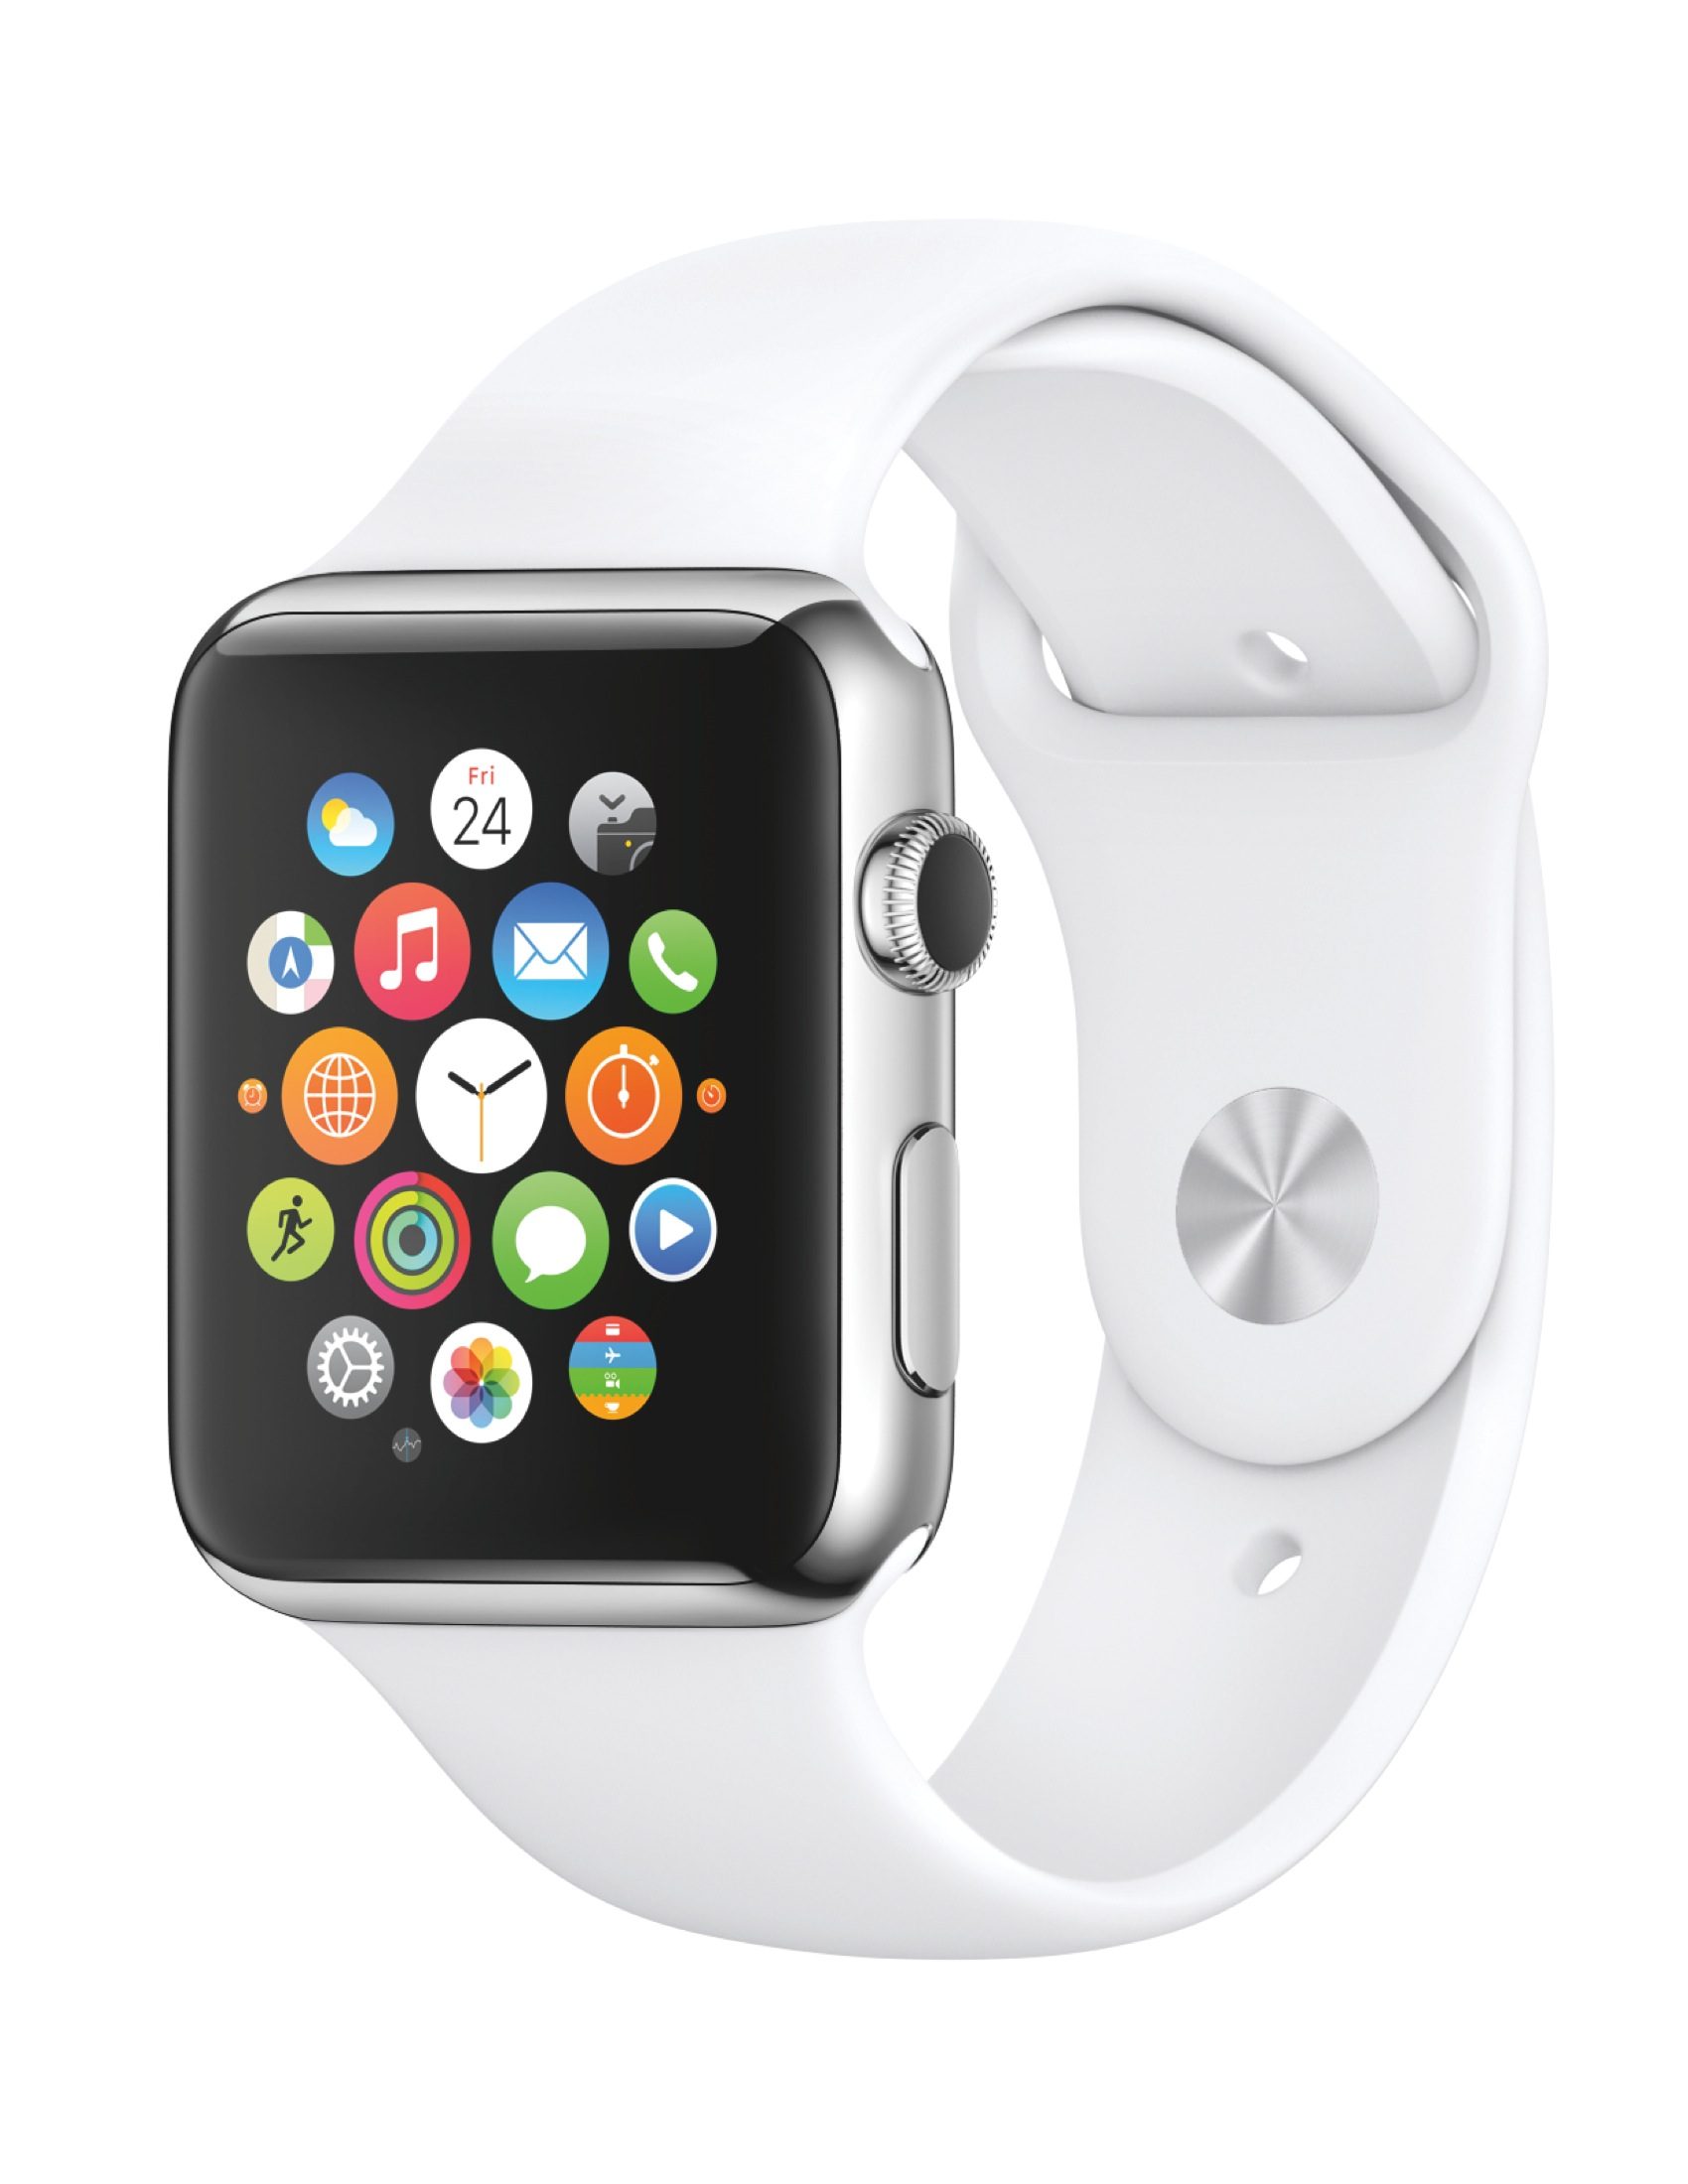 The Apple Watch: What It Can Actually Do For You